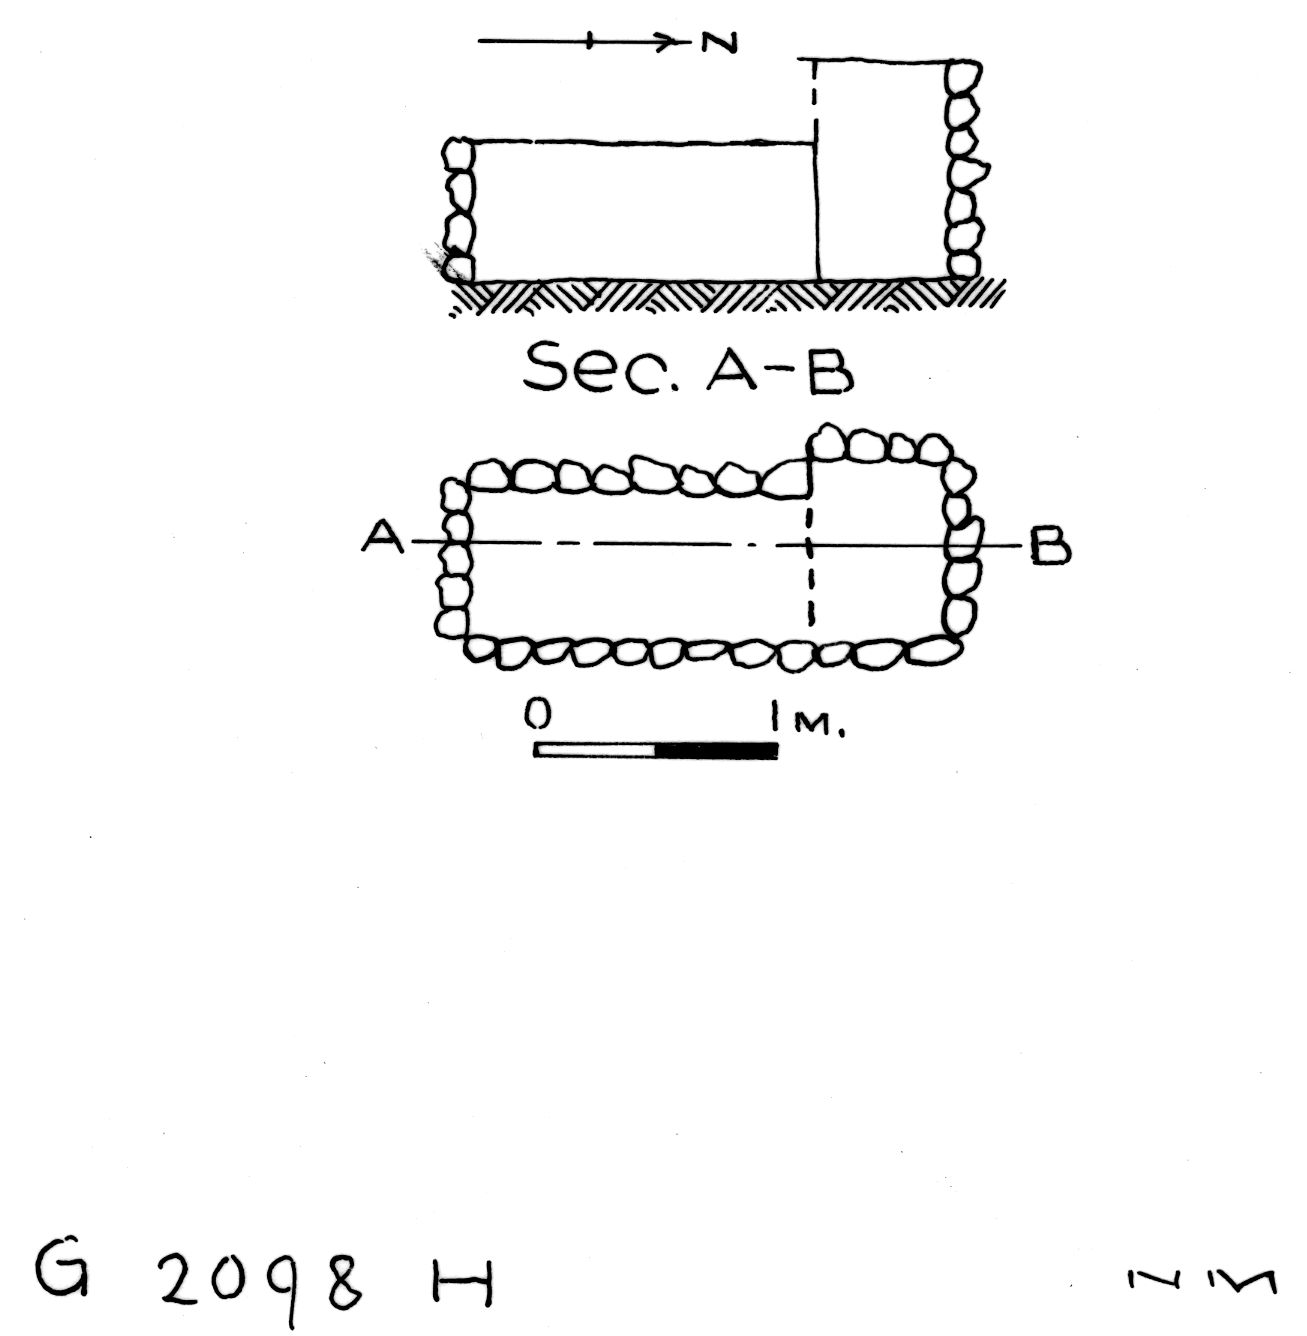 Maps and plans: G 2098, Shaft H